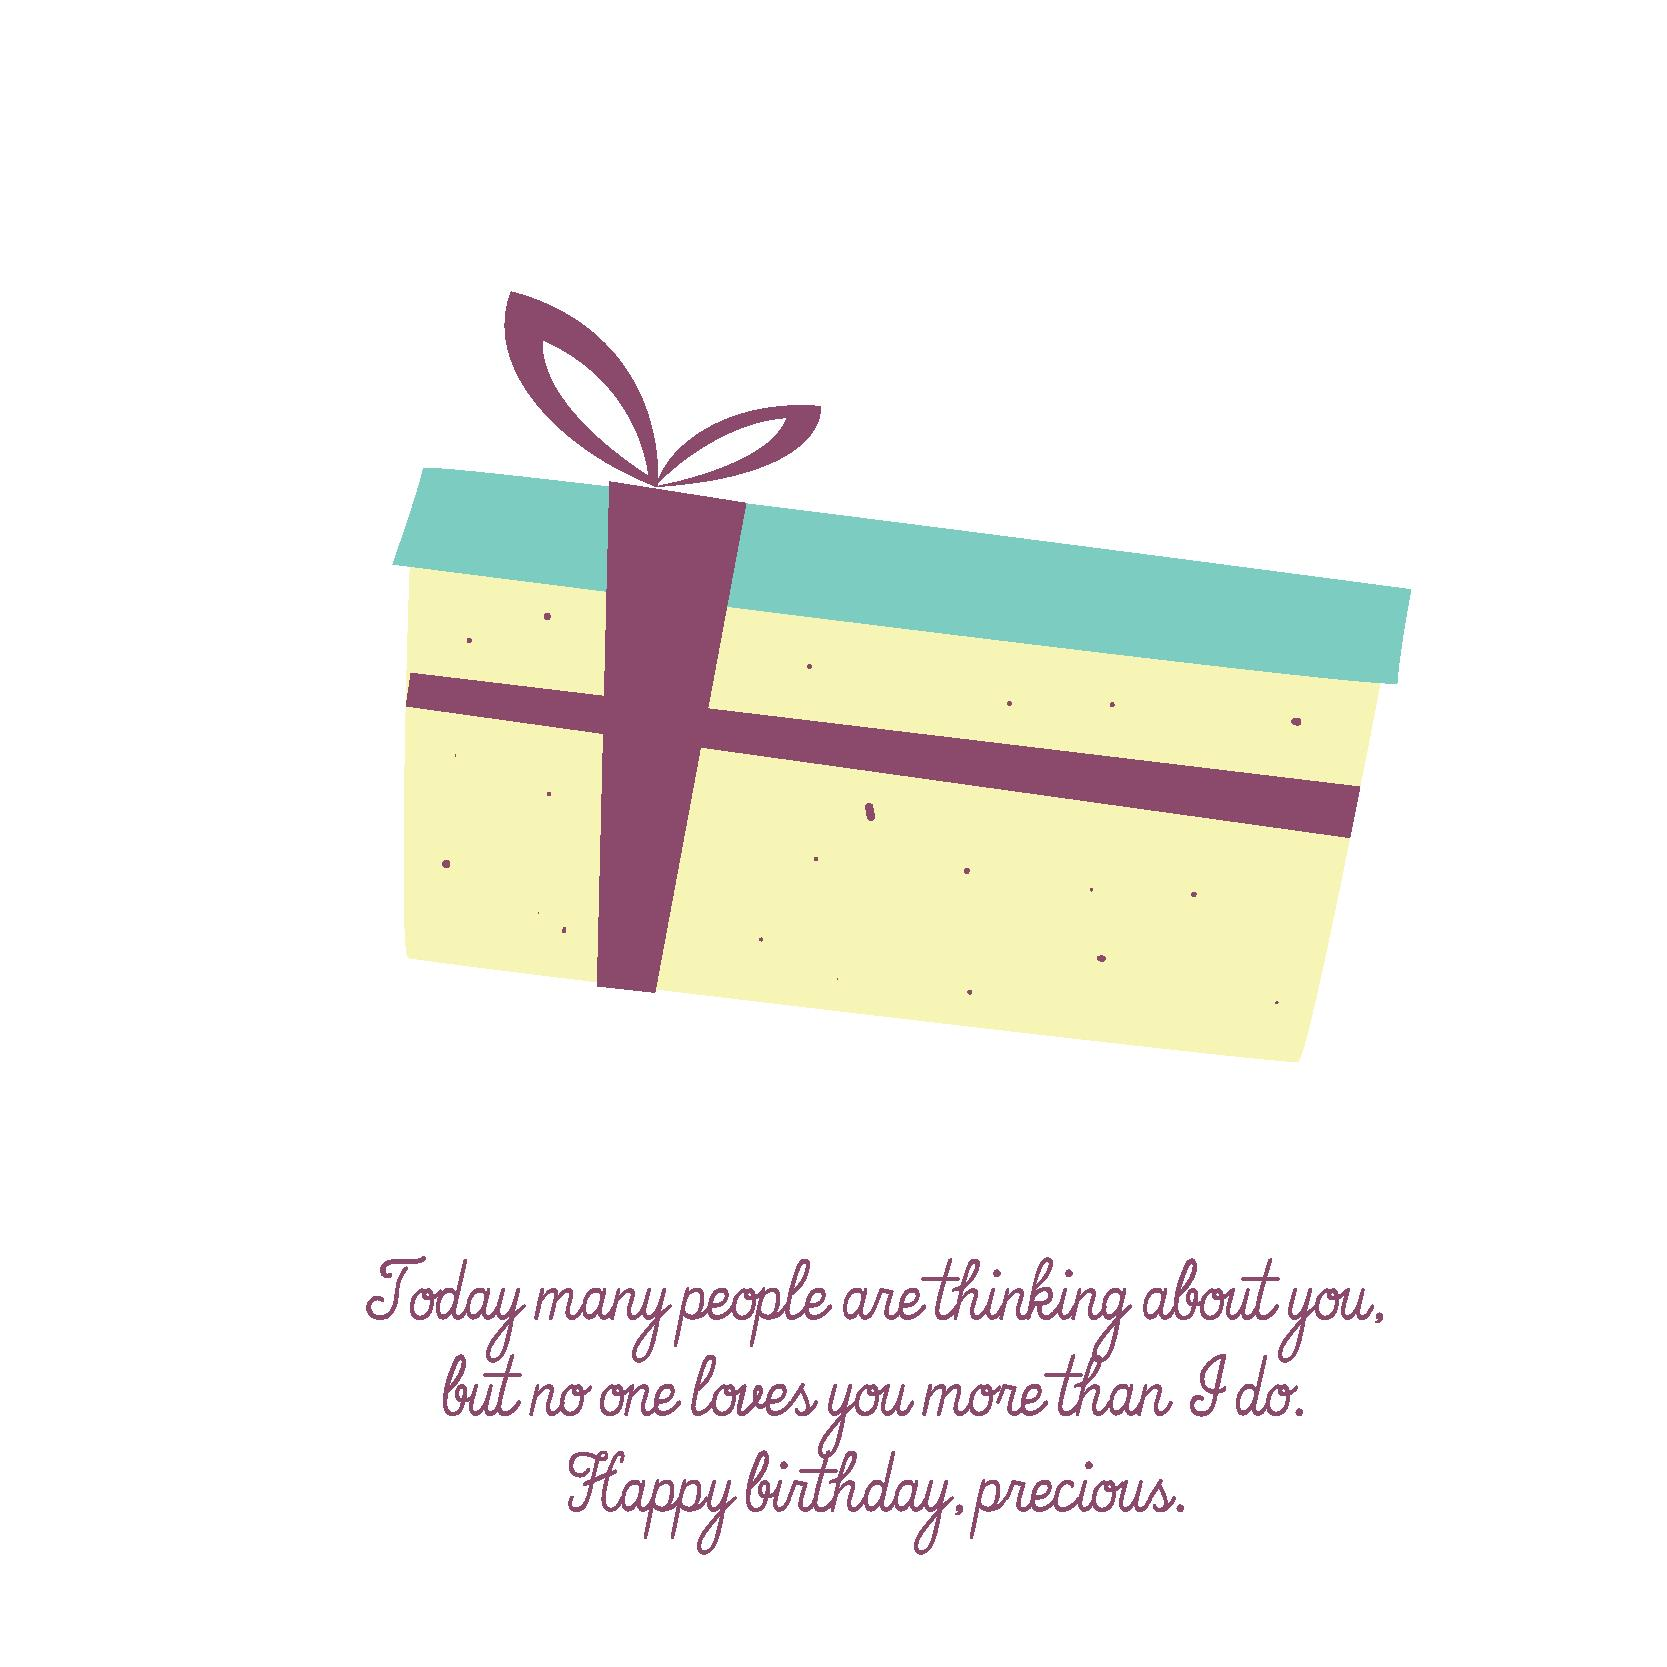 special-birthday-wishes-02